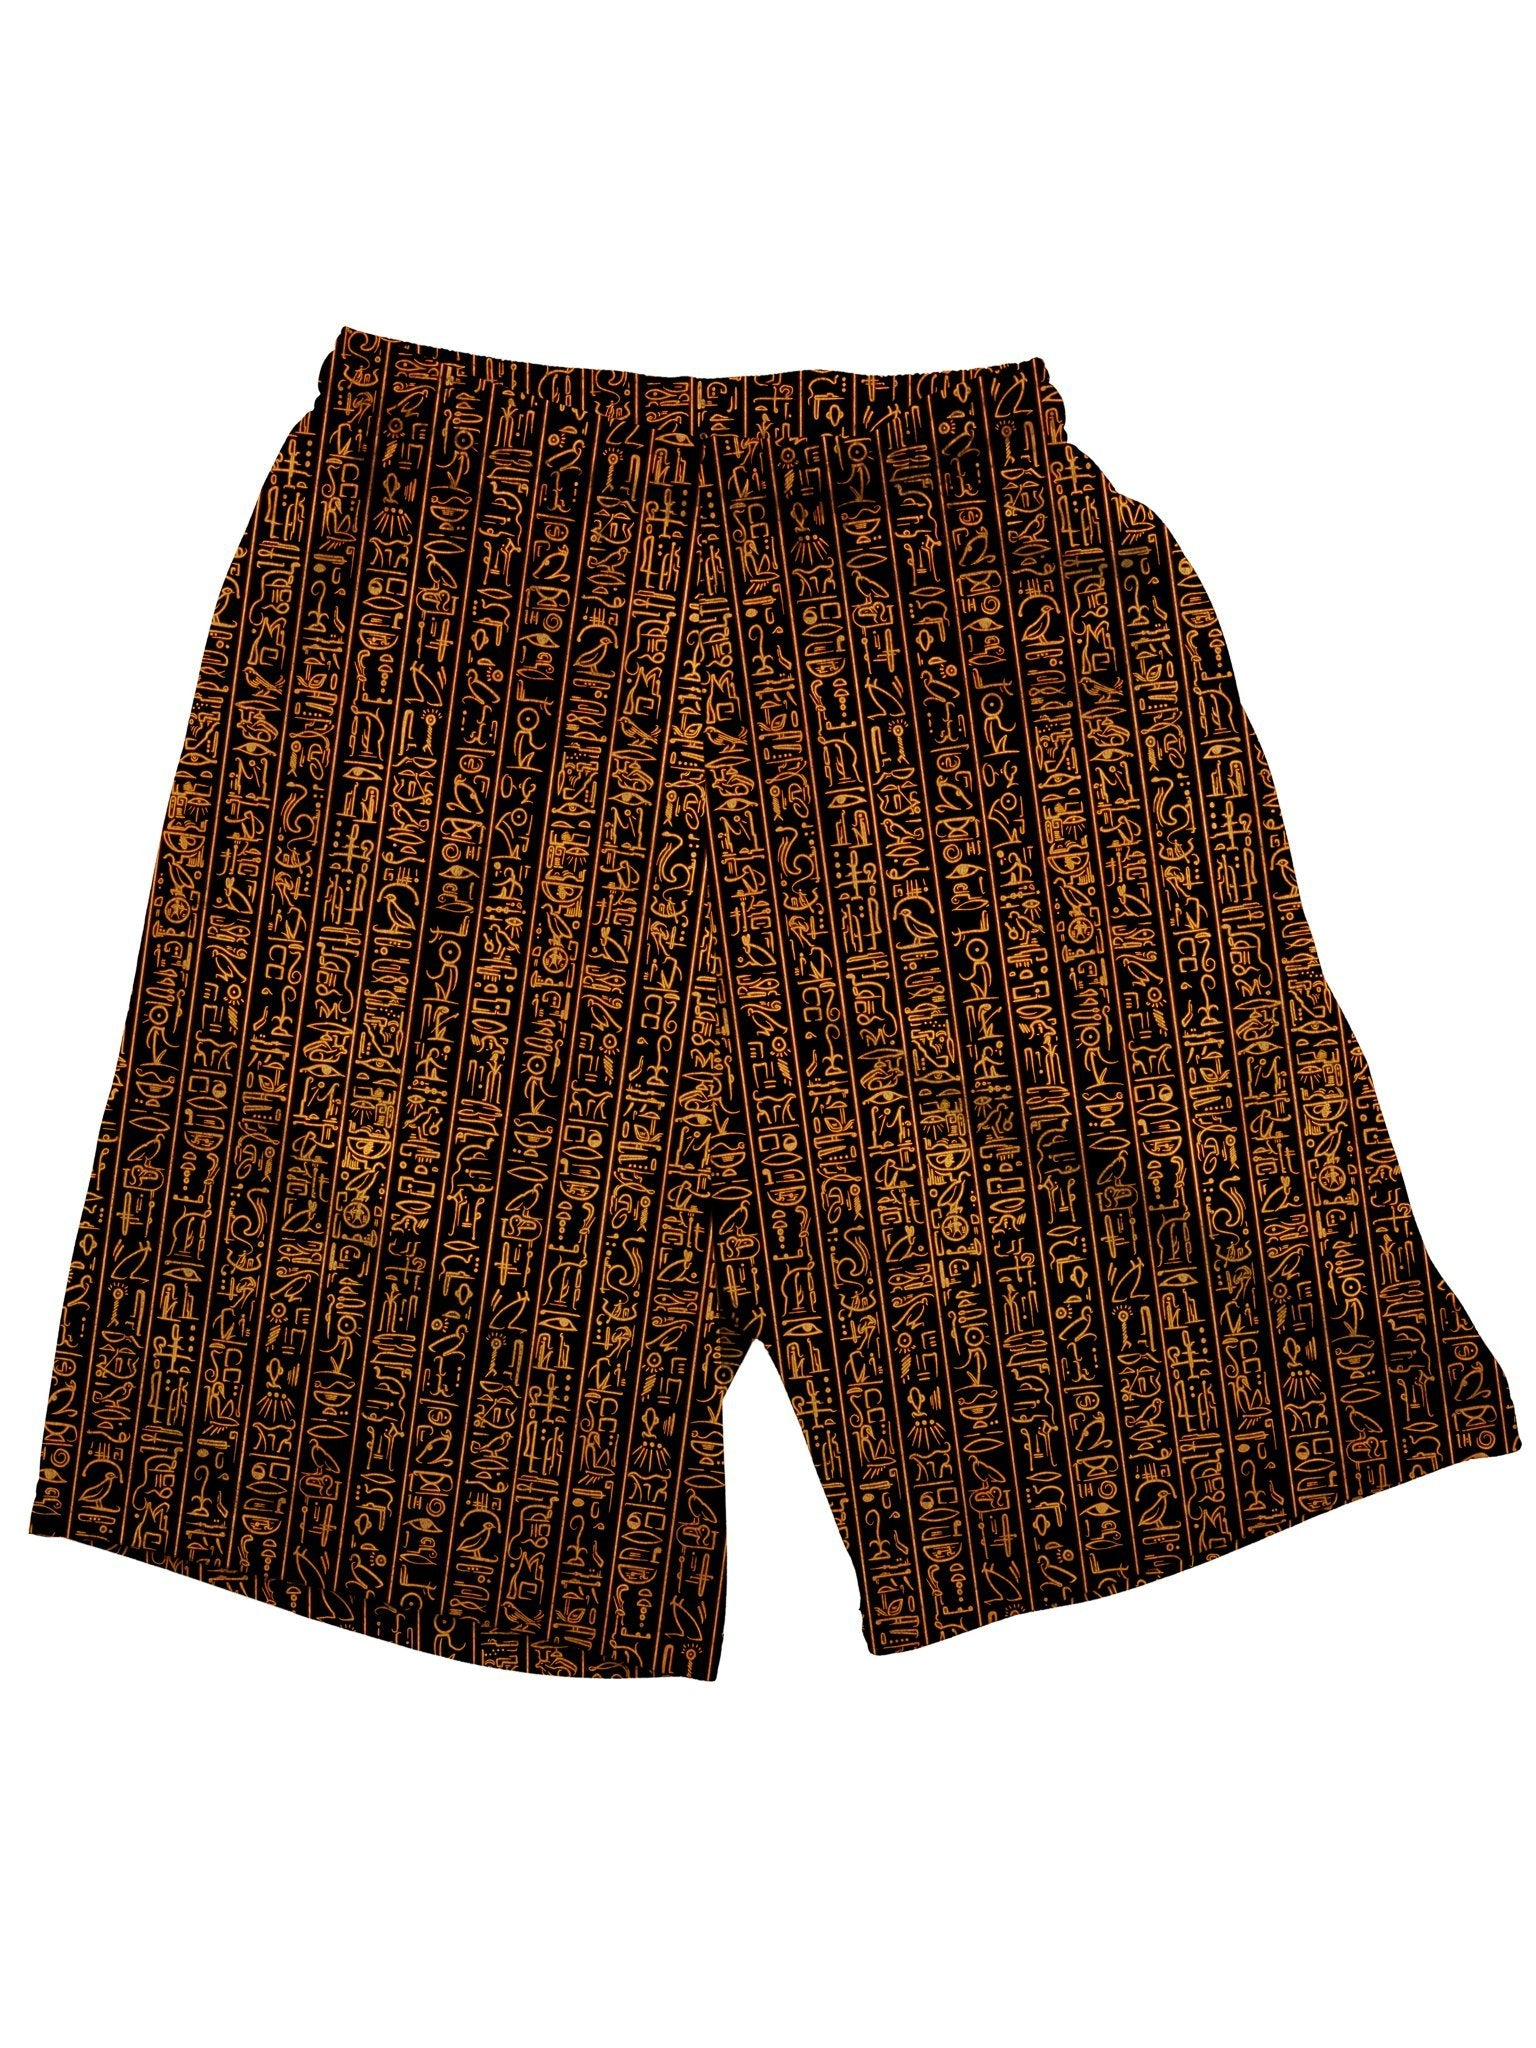 Egyptian Glyphs (Golden) Shorts Mens Shorts Electro Threads